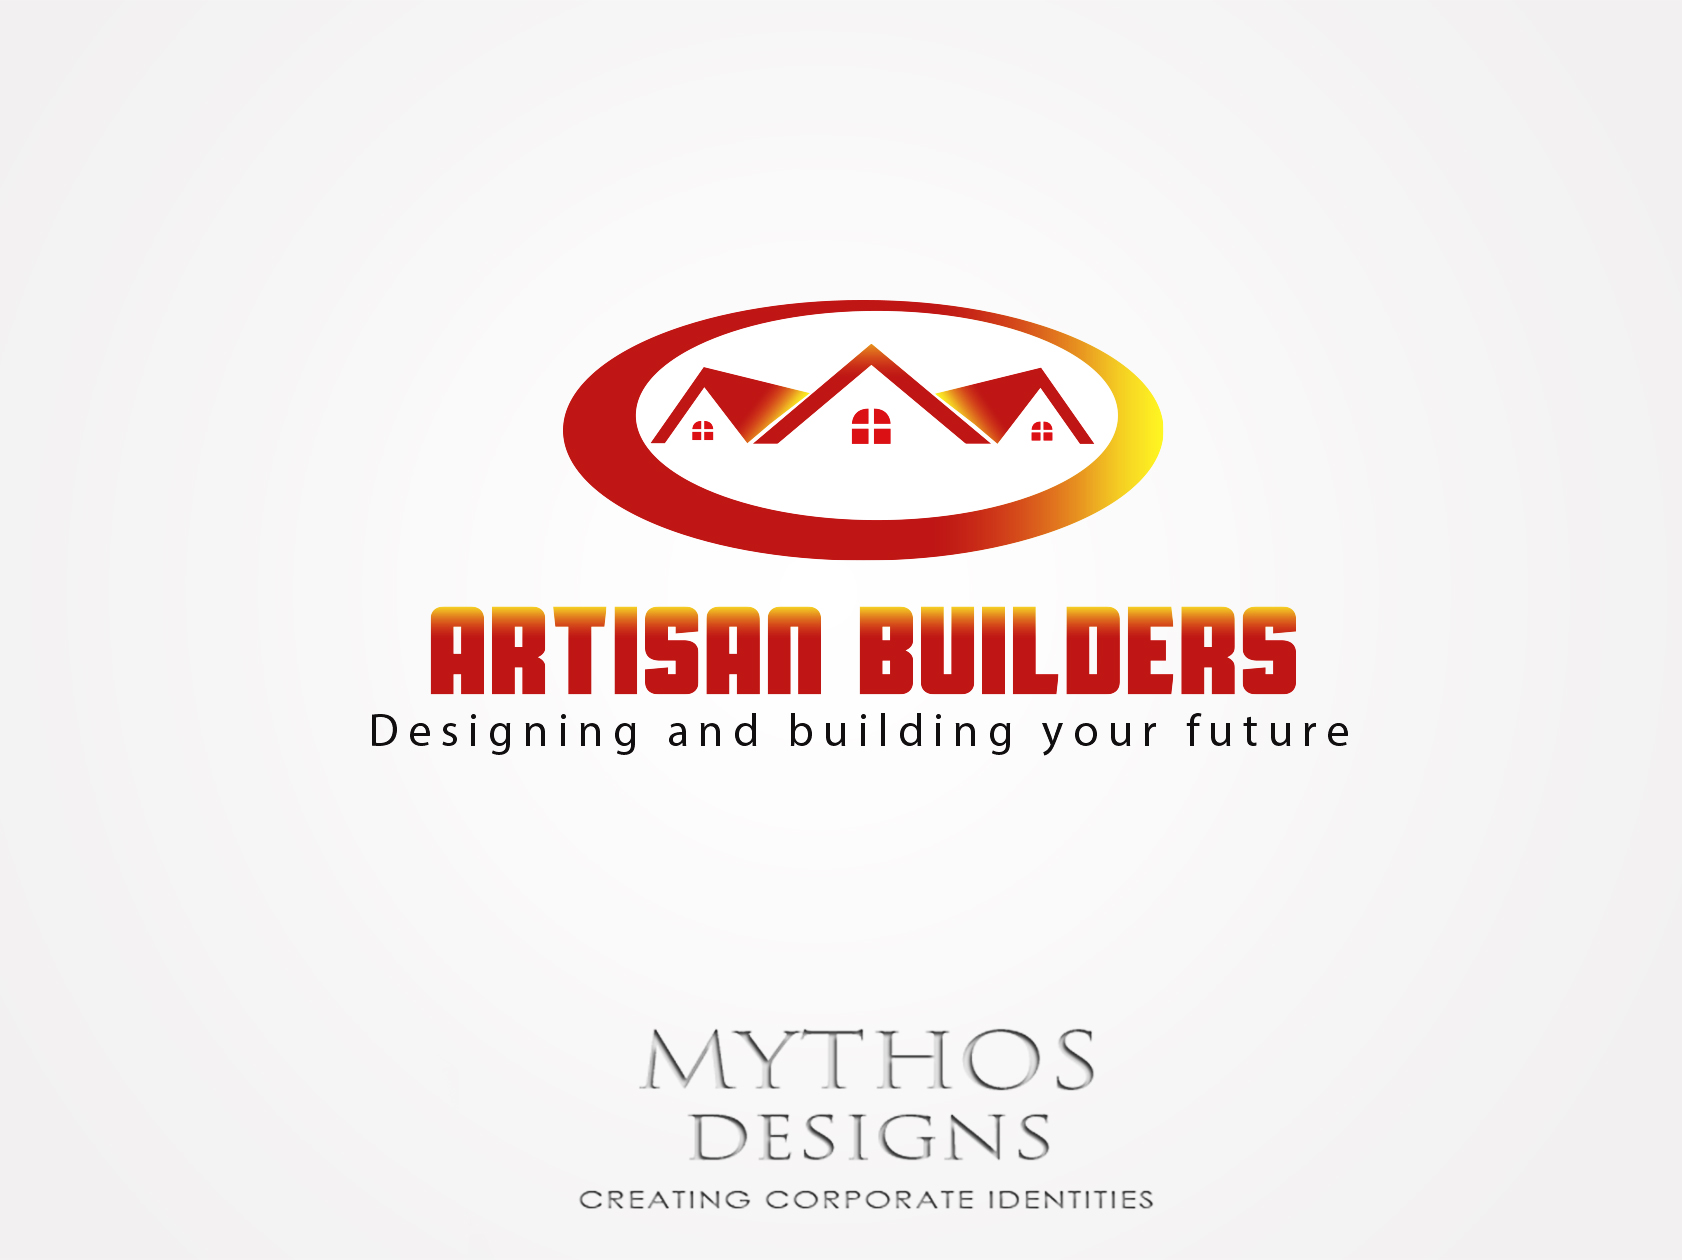 Logo Design by Mythos Designs - Entry No. 53 in the Logo Design Contest Captivating Logo Design for Artisan Builders.